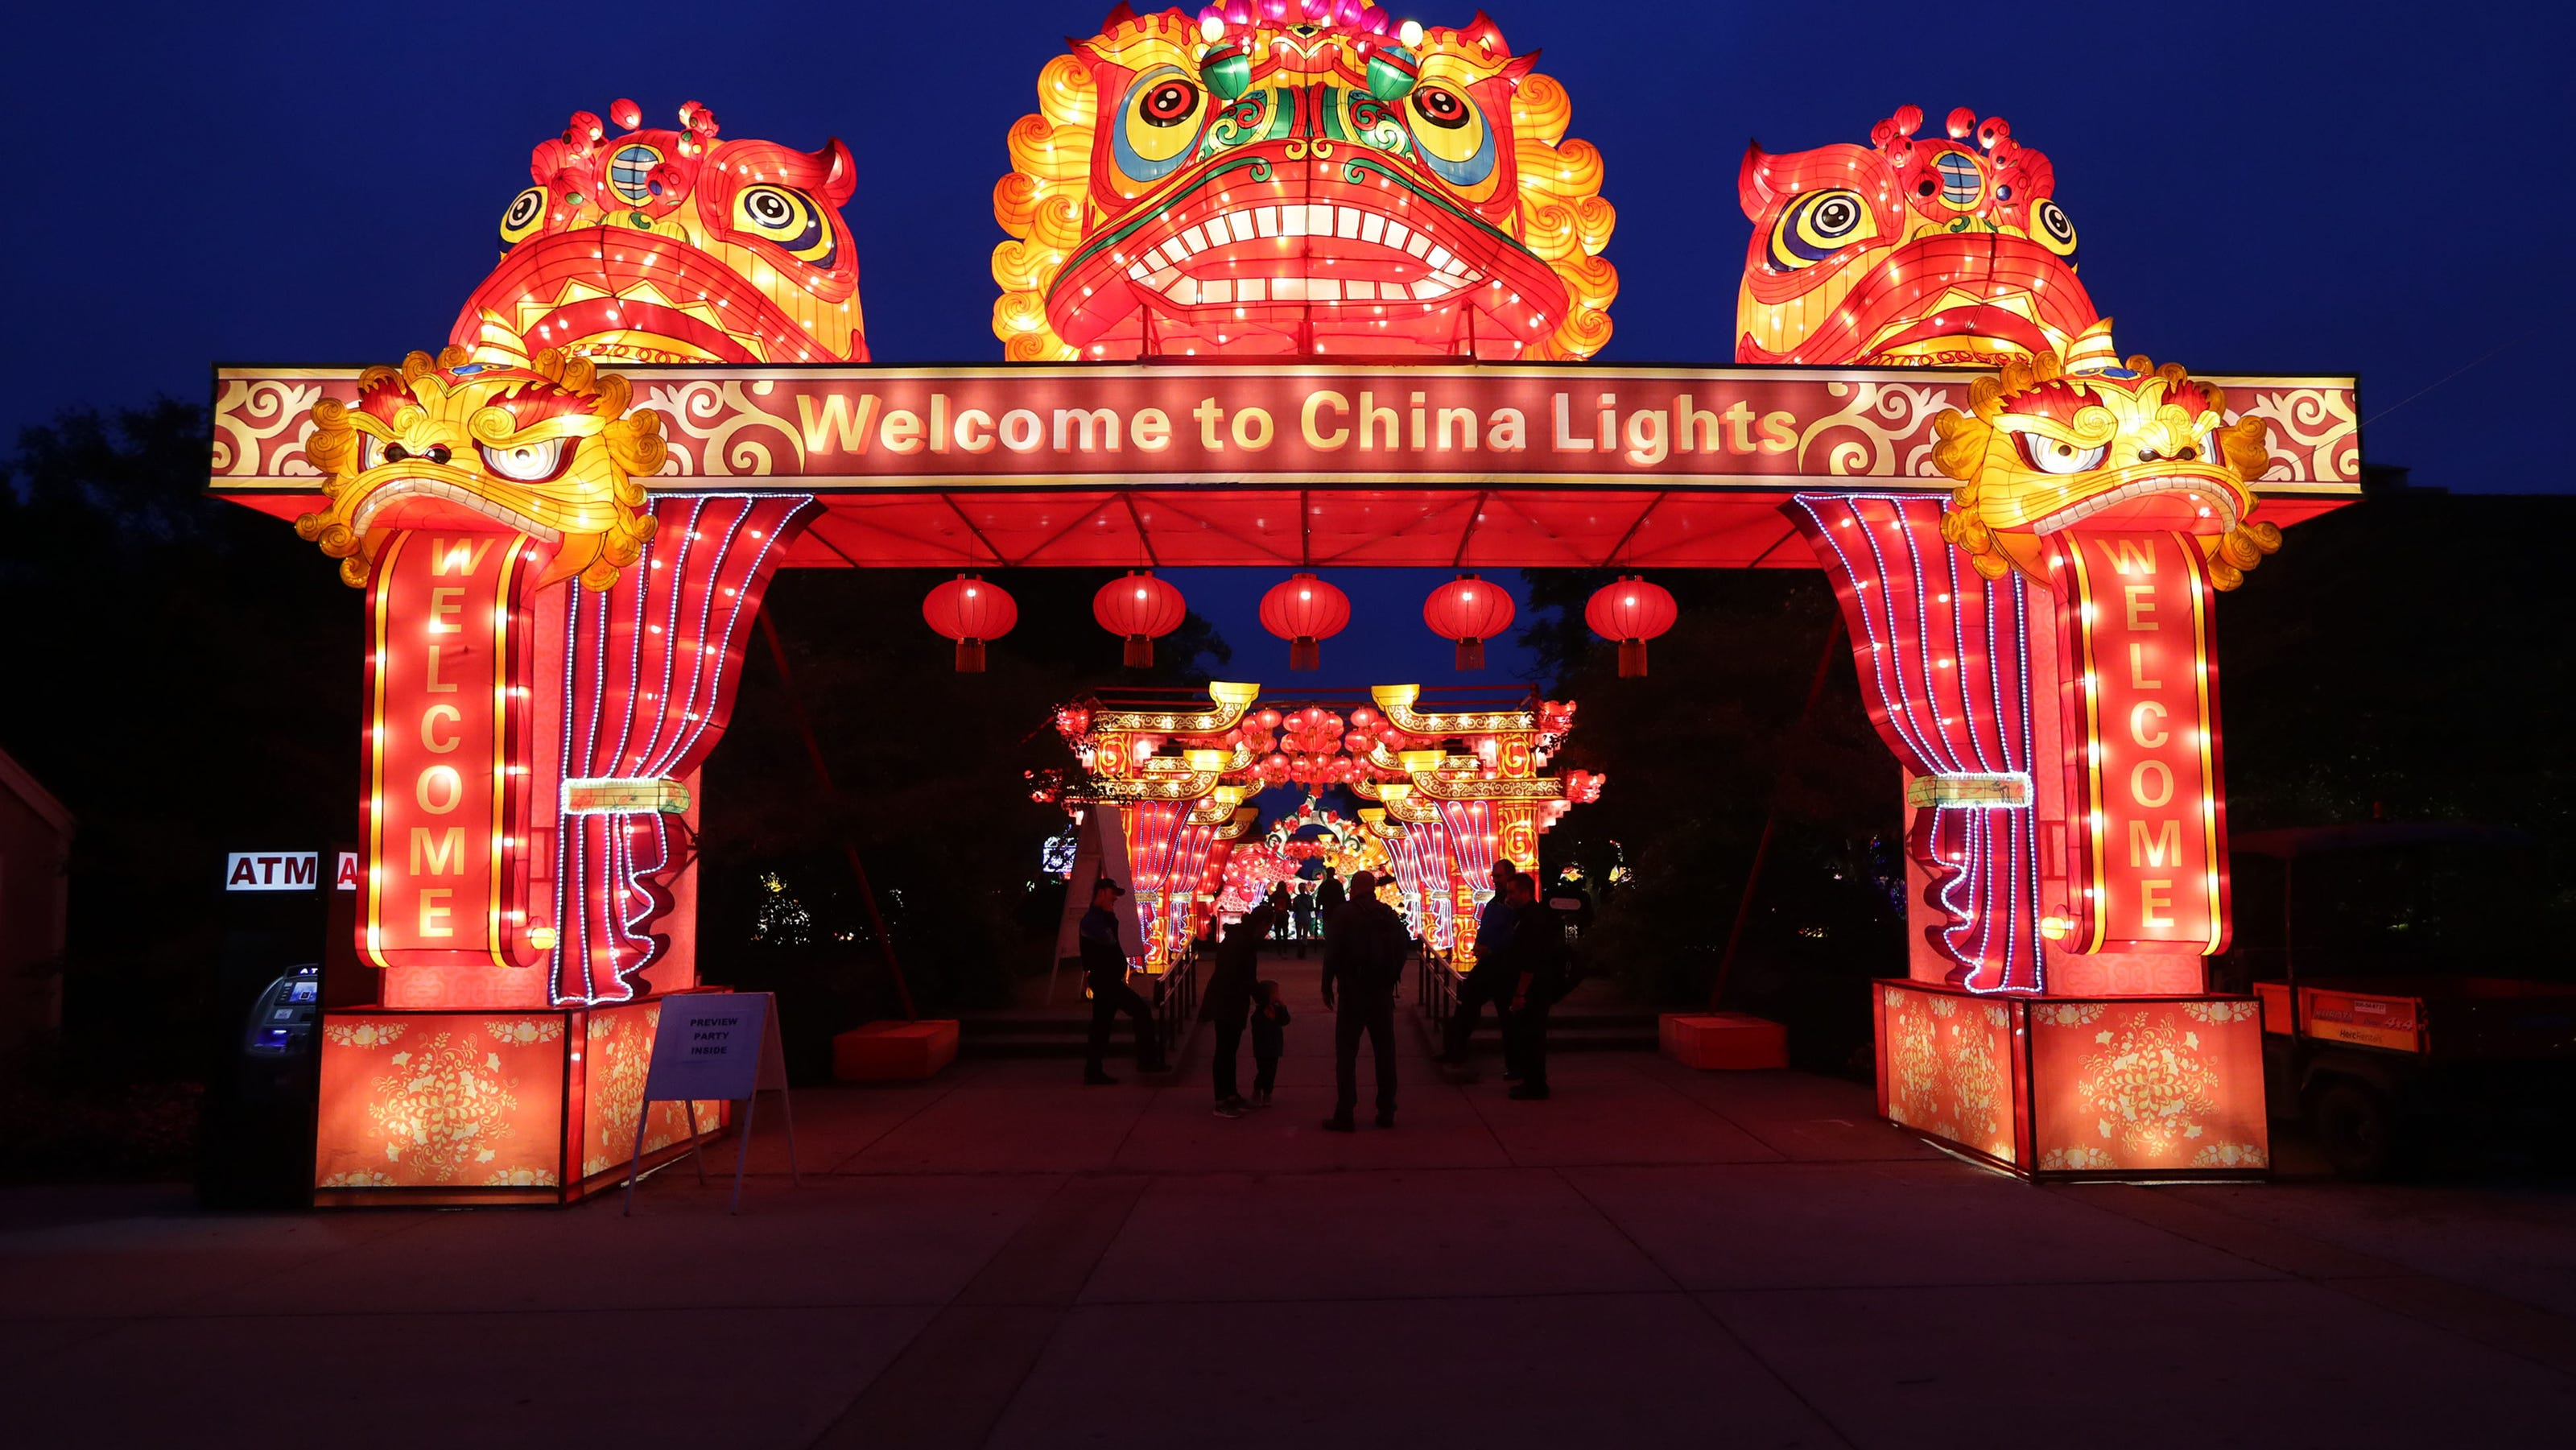 3692bbe2 6892 4f33 b445 483c1c7c7957 CHINALIGHTS 04678 - Boerner Botanical Gardens China Lights 2019